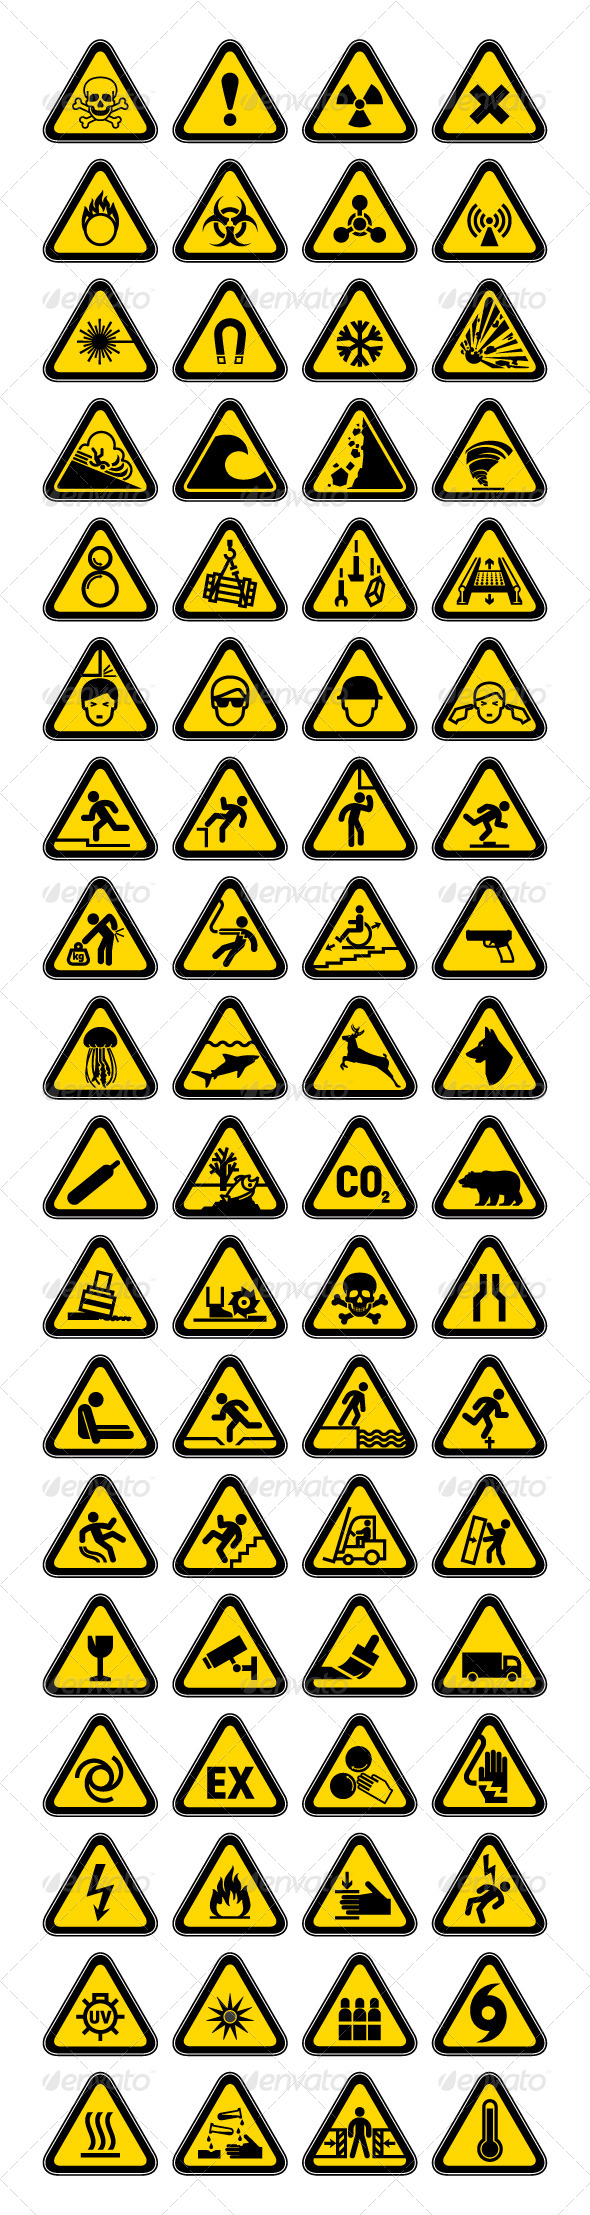 GraphicRiver 72 Hazard Warning Symbols Labels Triangular 4431960